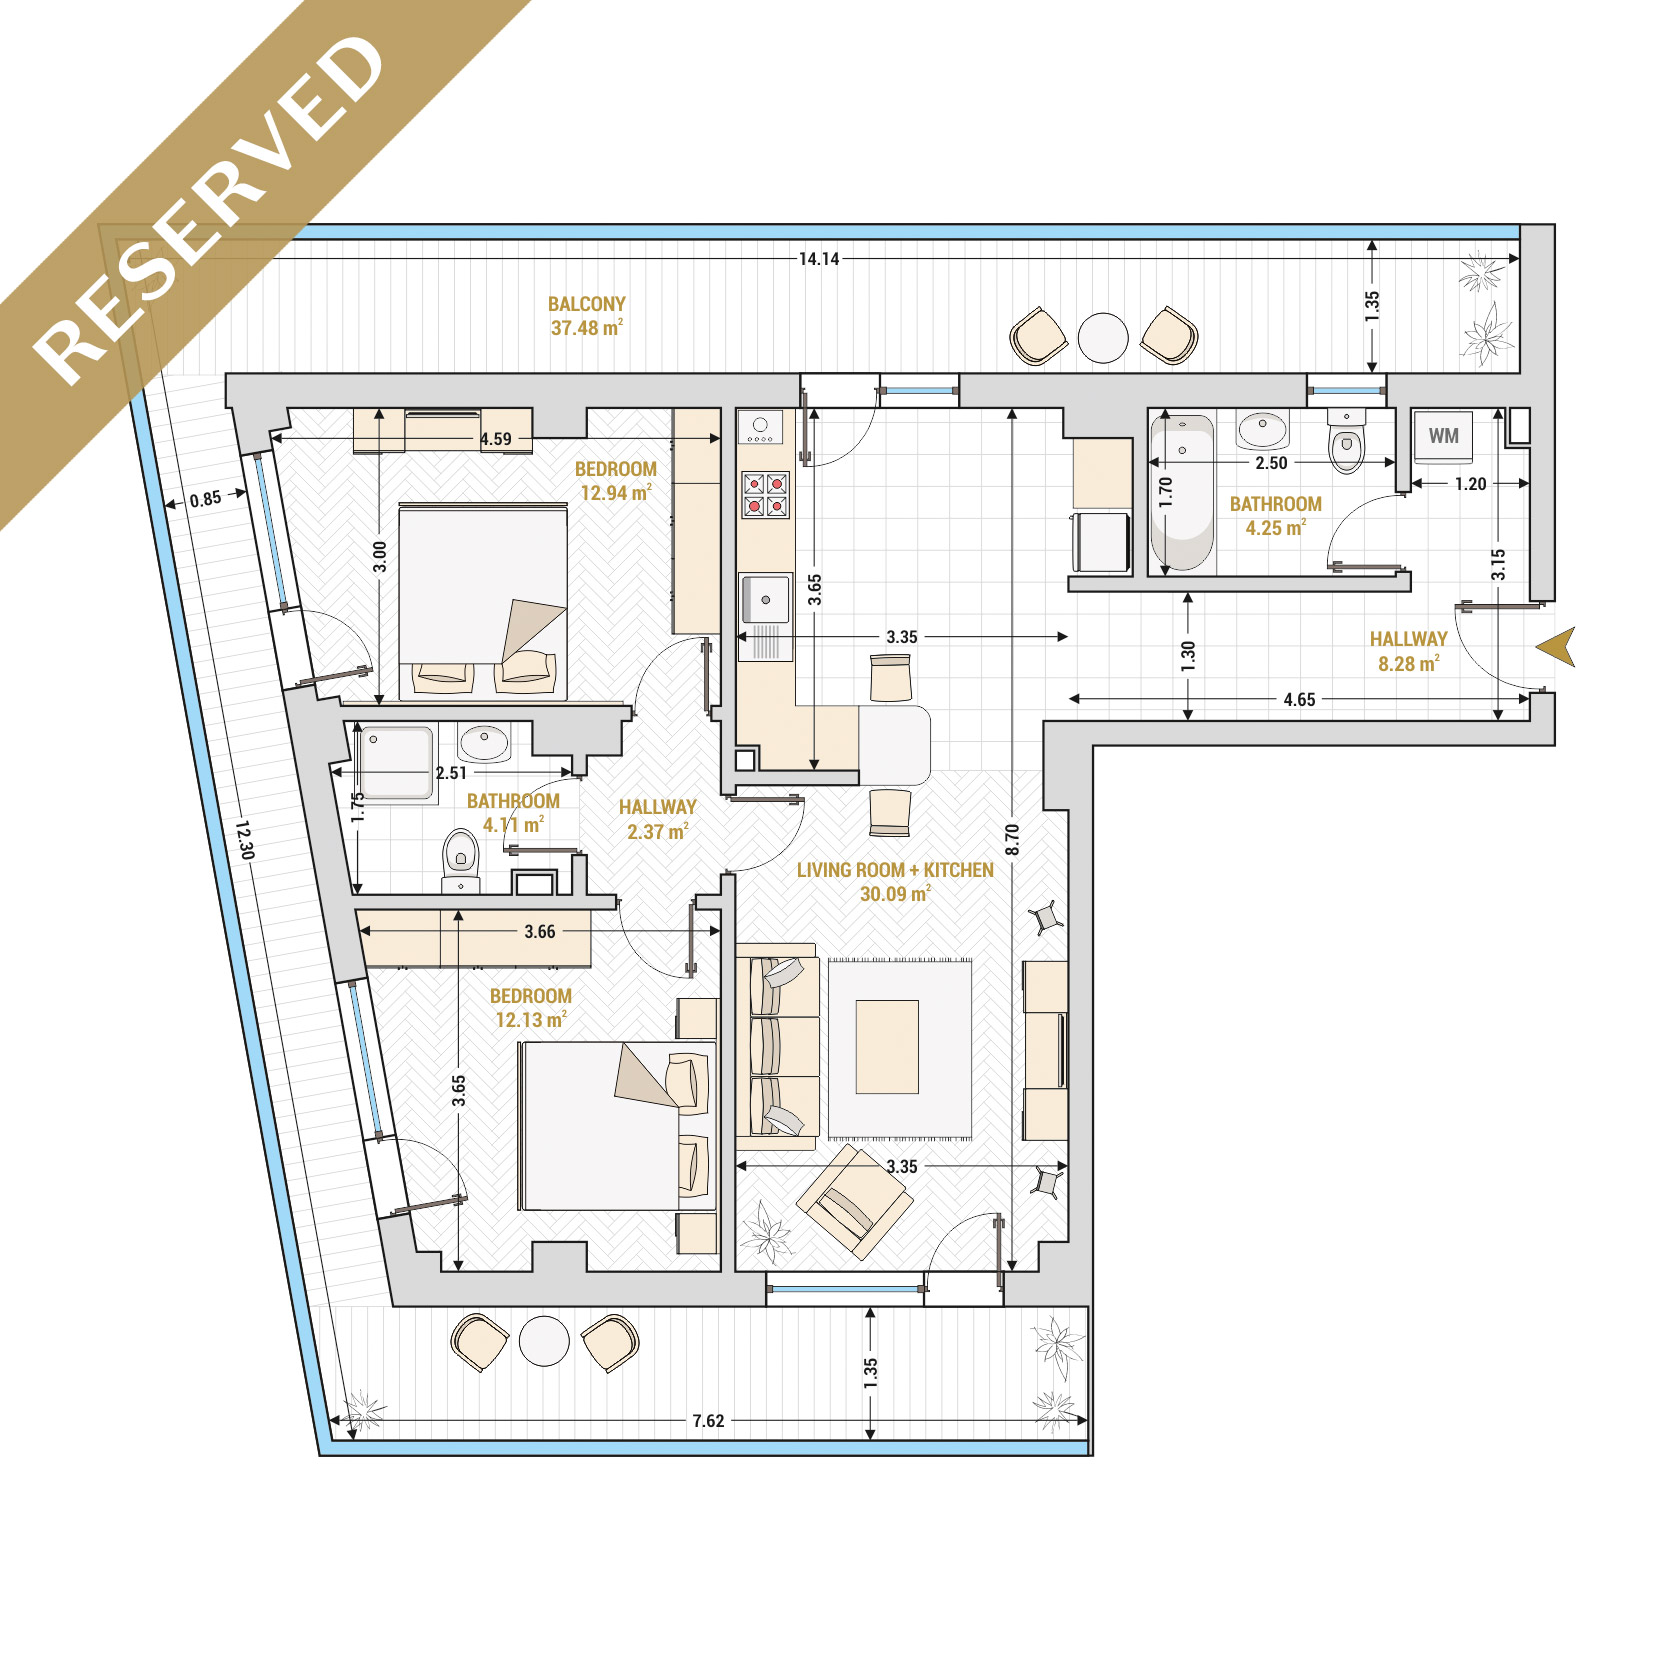 Catedral Residence - 3 Room Apartment for Sale - Bucharest - Romania - Type 1 – S1 - R